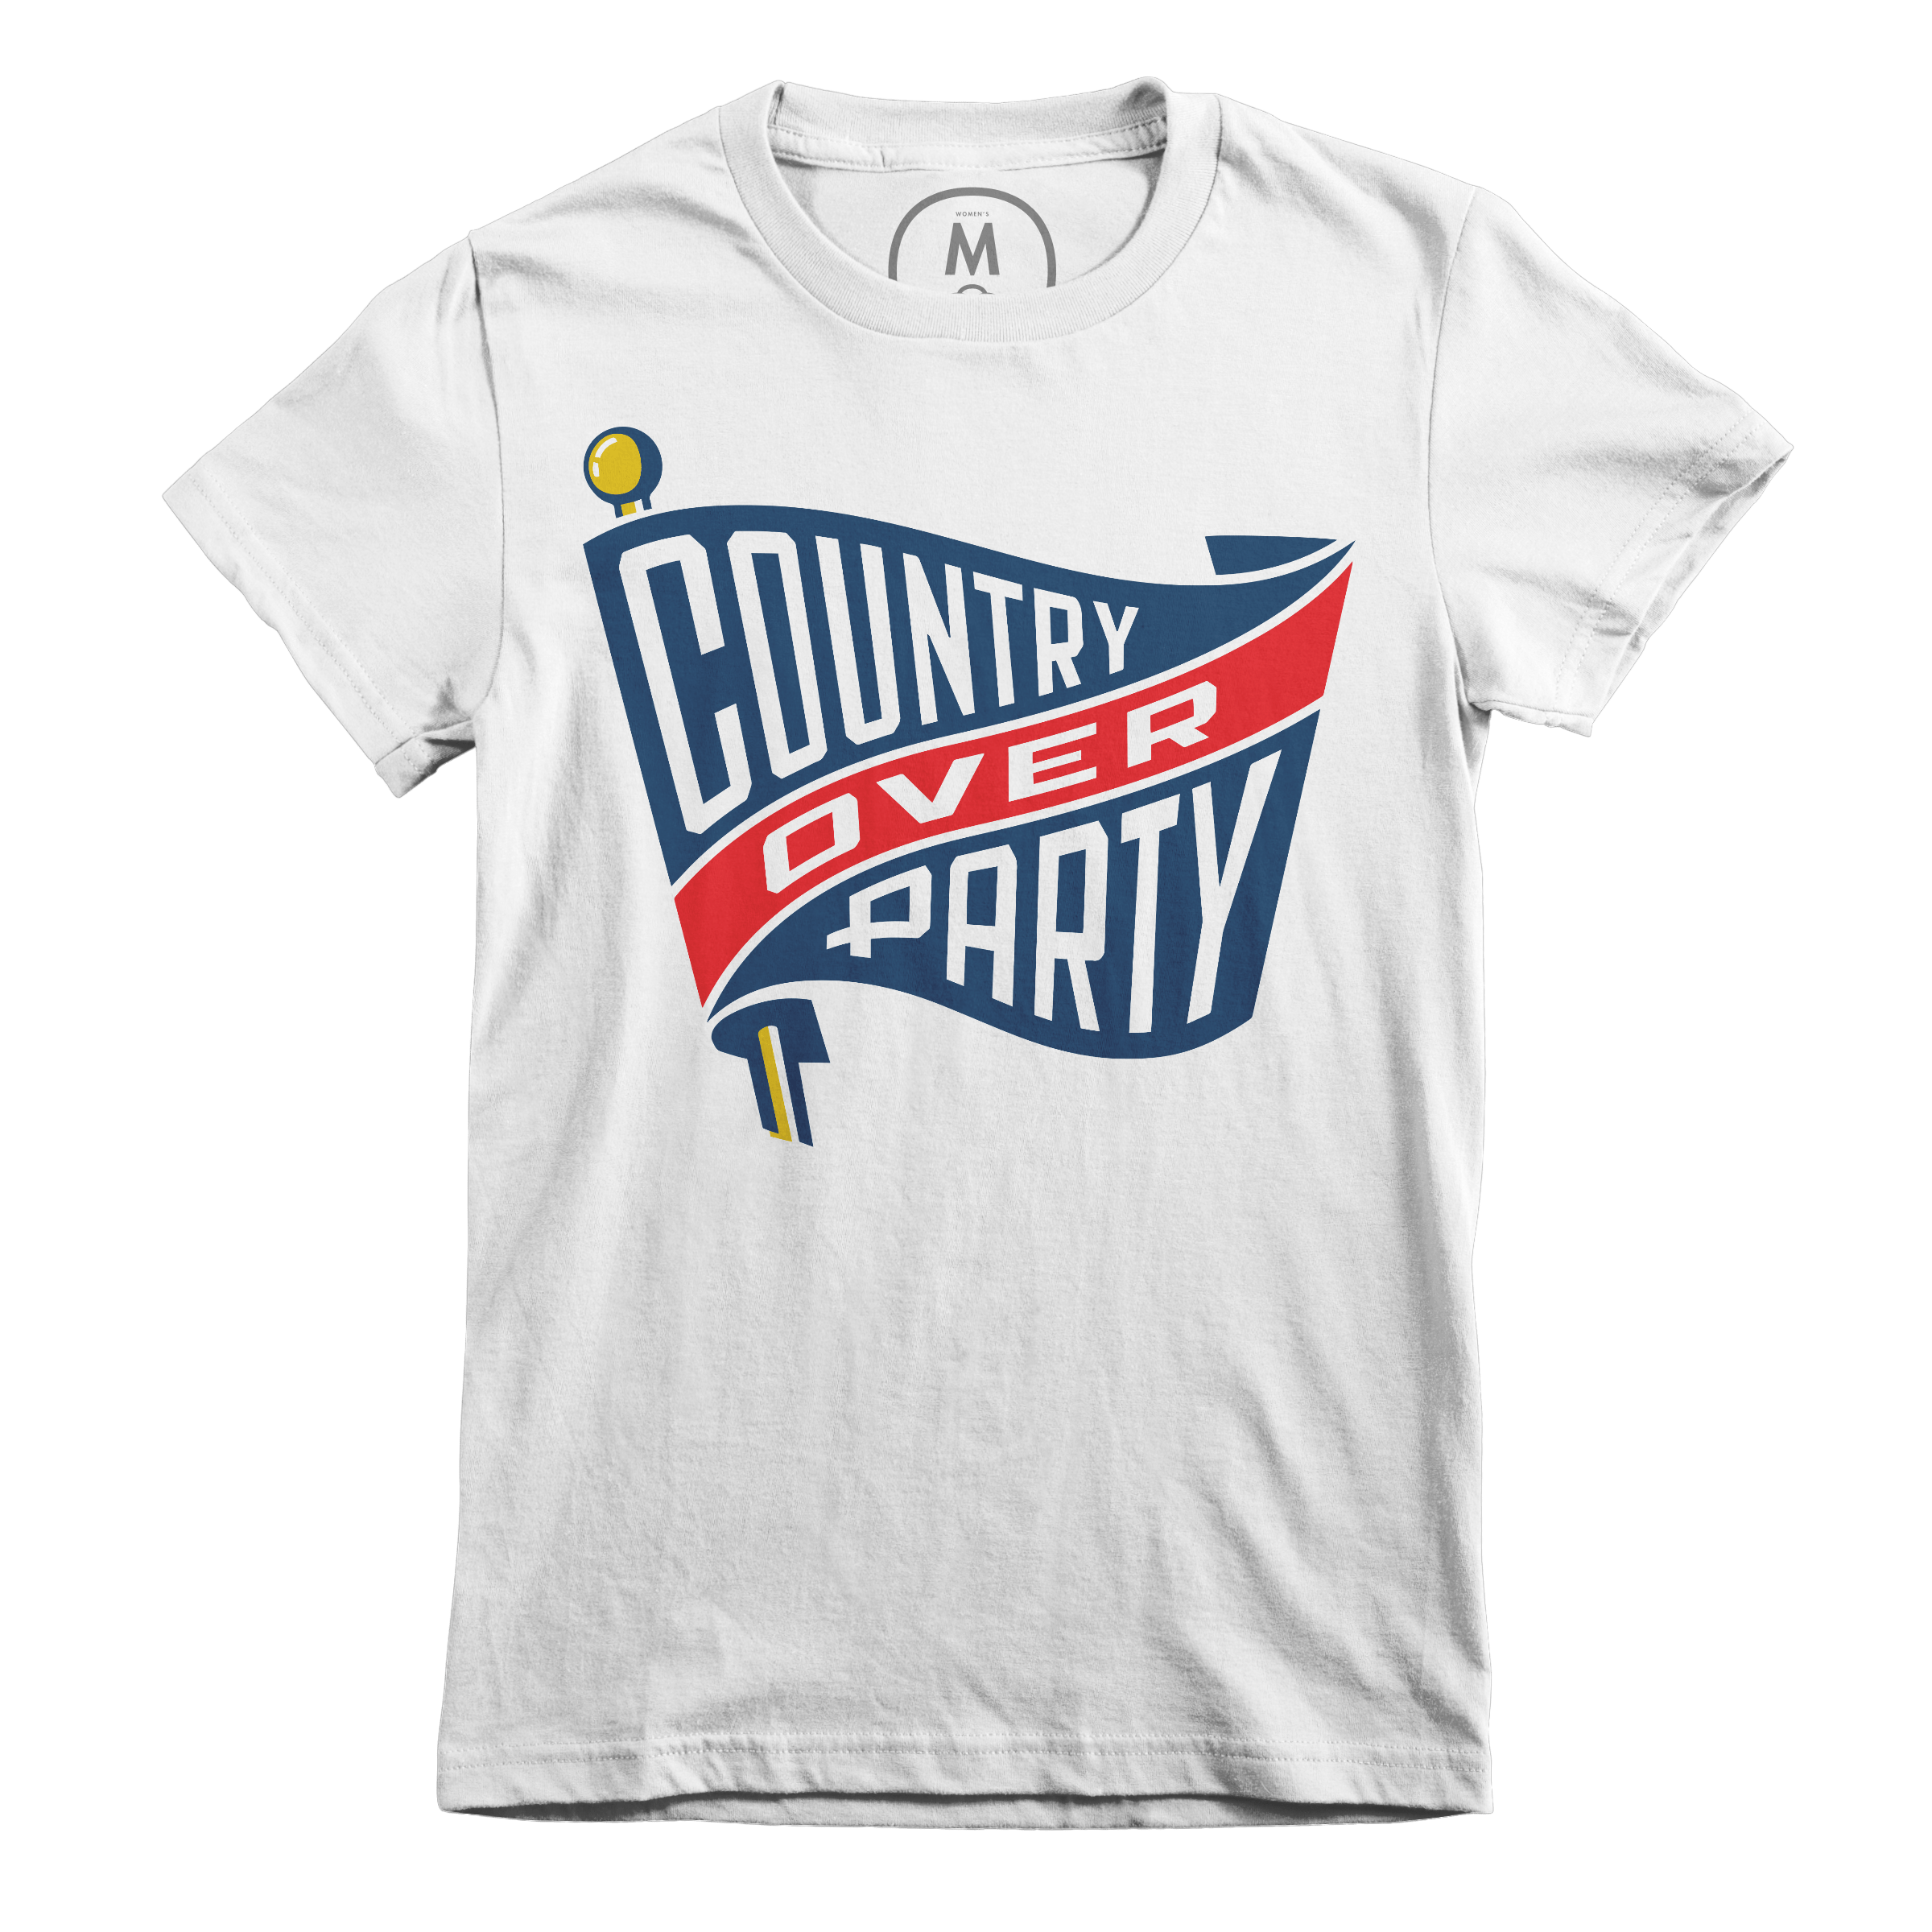 Aufbewahrung Tee Sonde Country Over Party Graphic Tee And Pullover Crewneck By Matthew